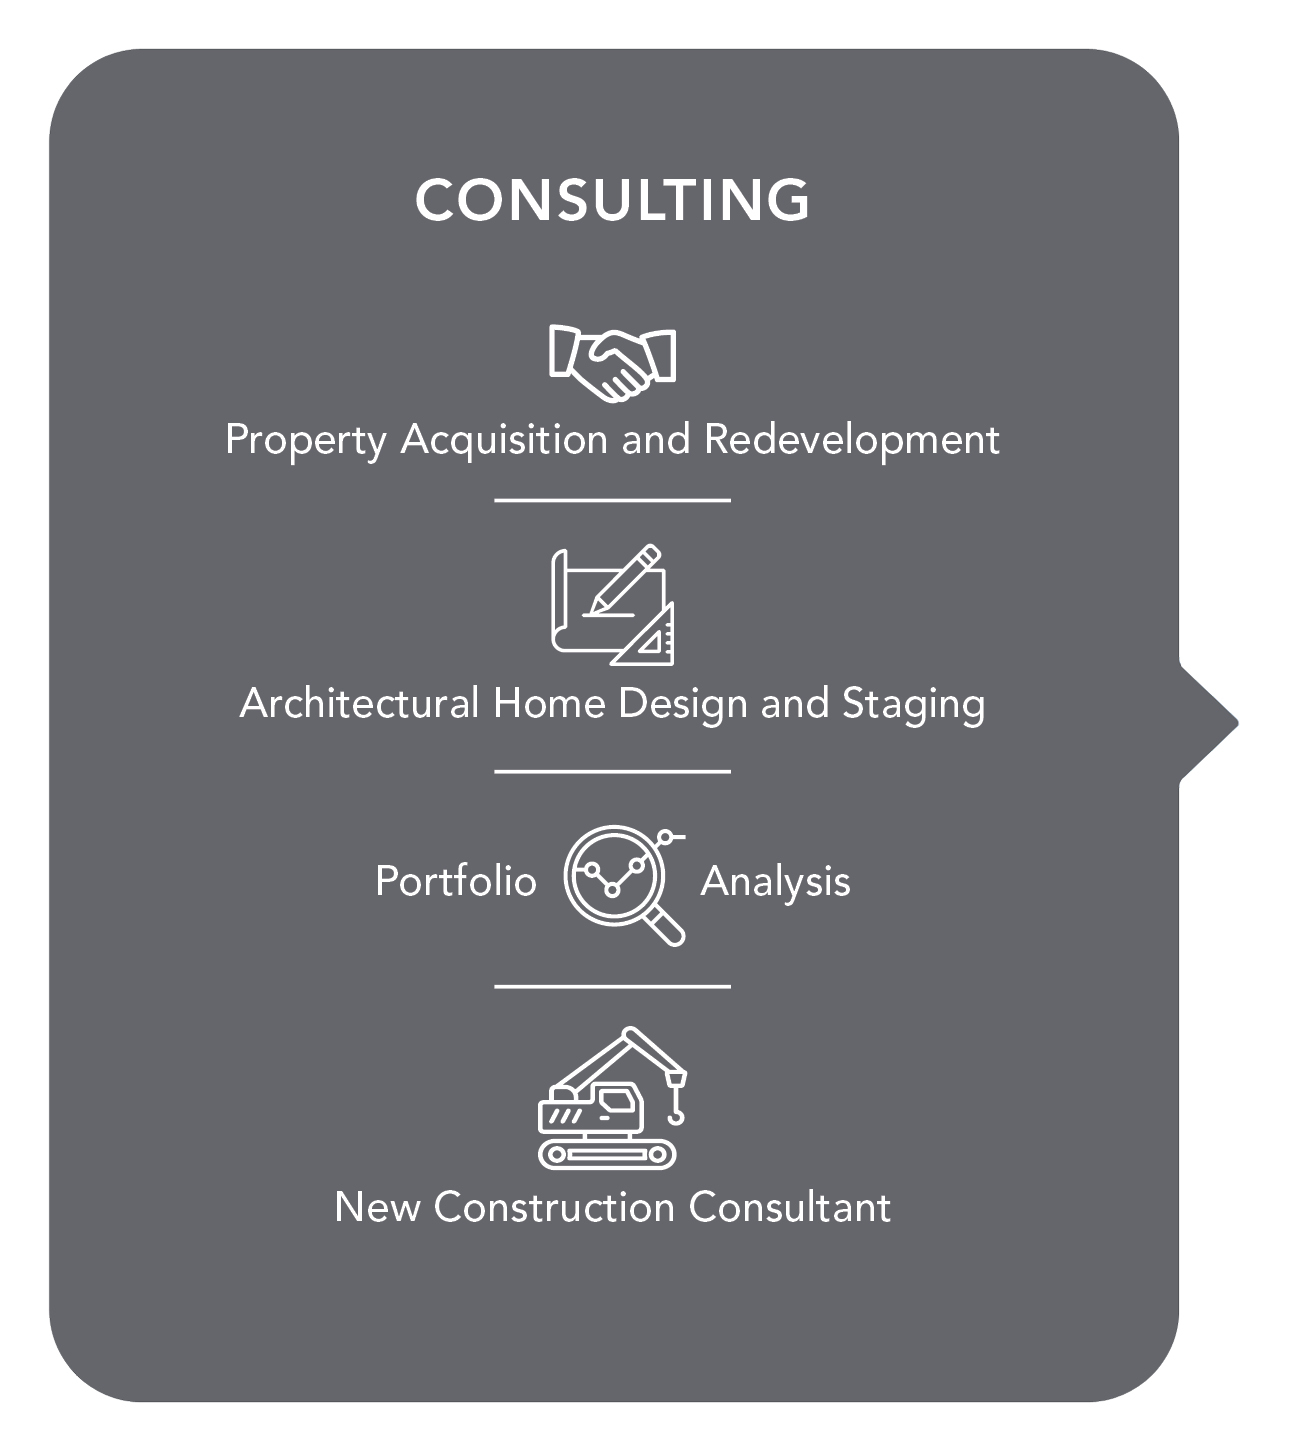 3-consulting.jpg